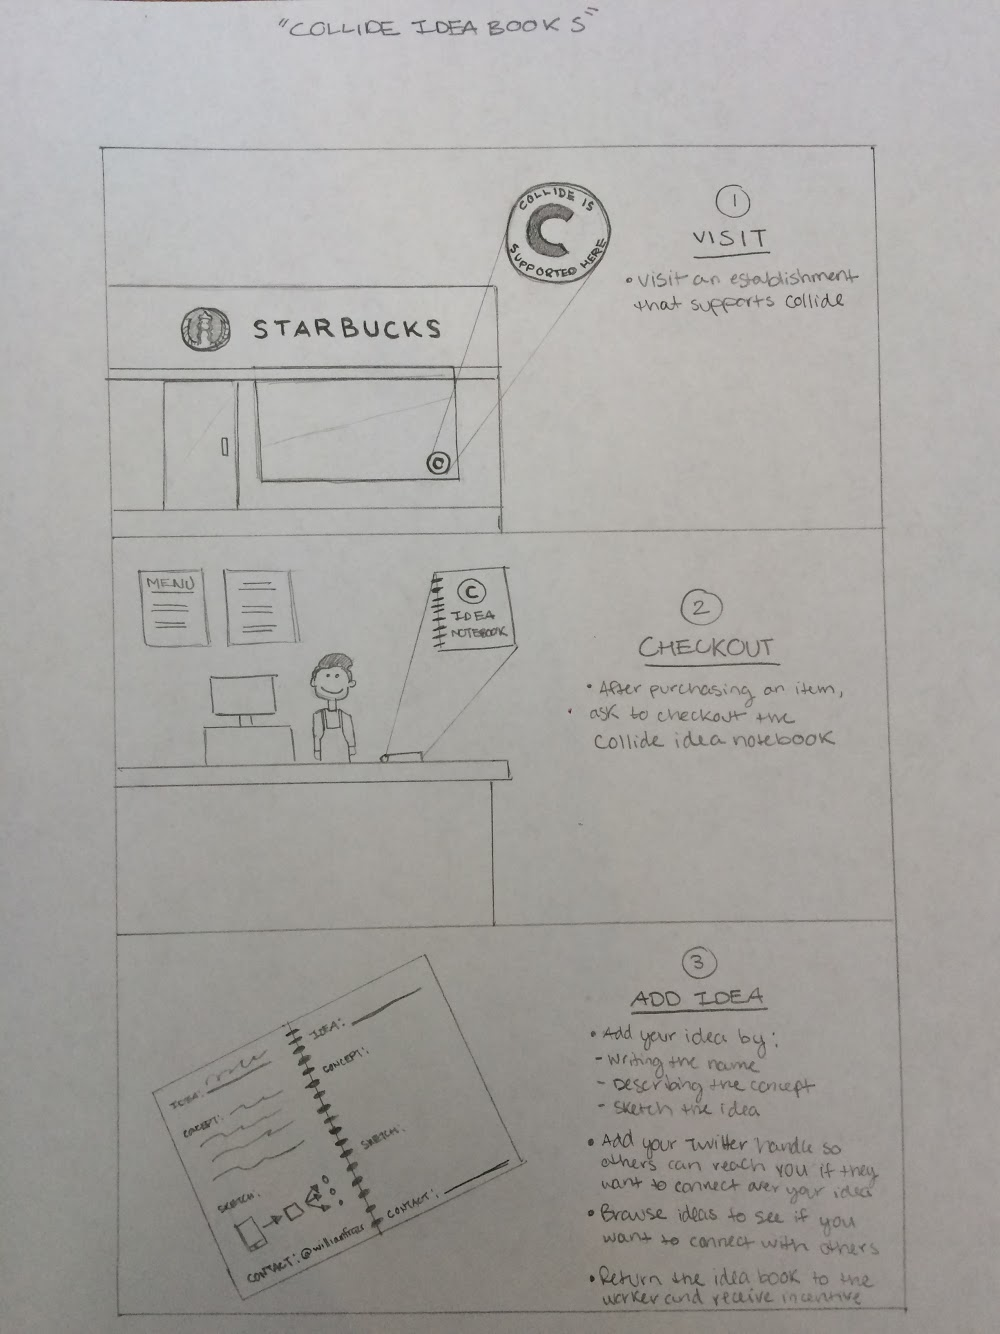 Solution Sketch #2 - A physical sketch book that allows you to browse through the ideas of others and reach out to them using their contact information.